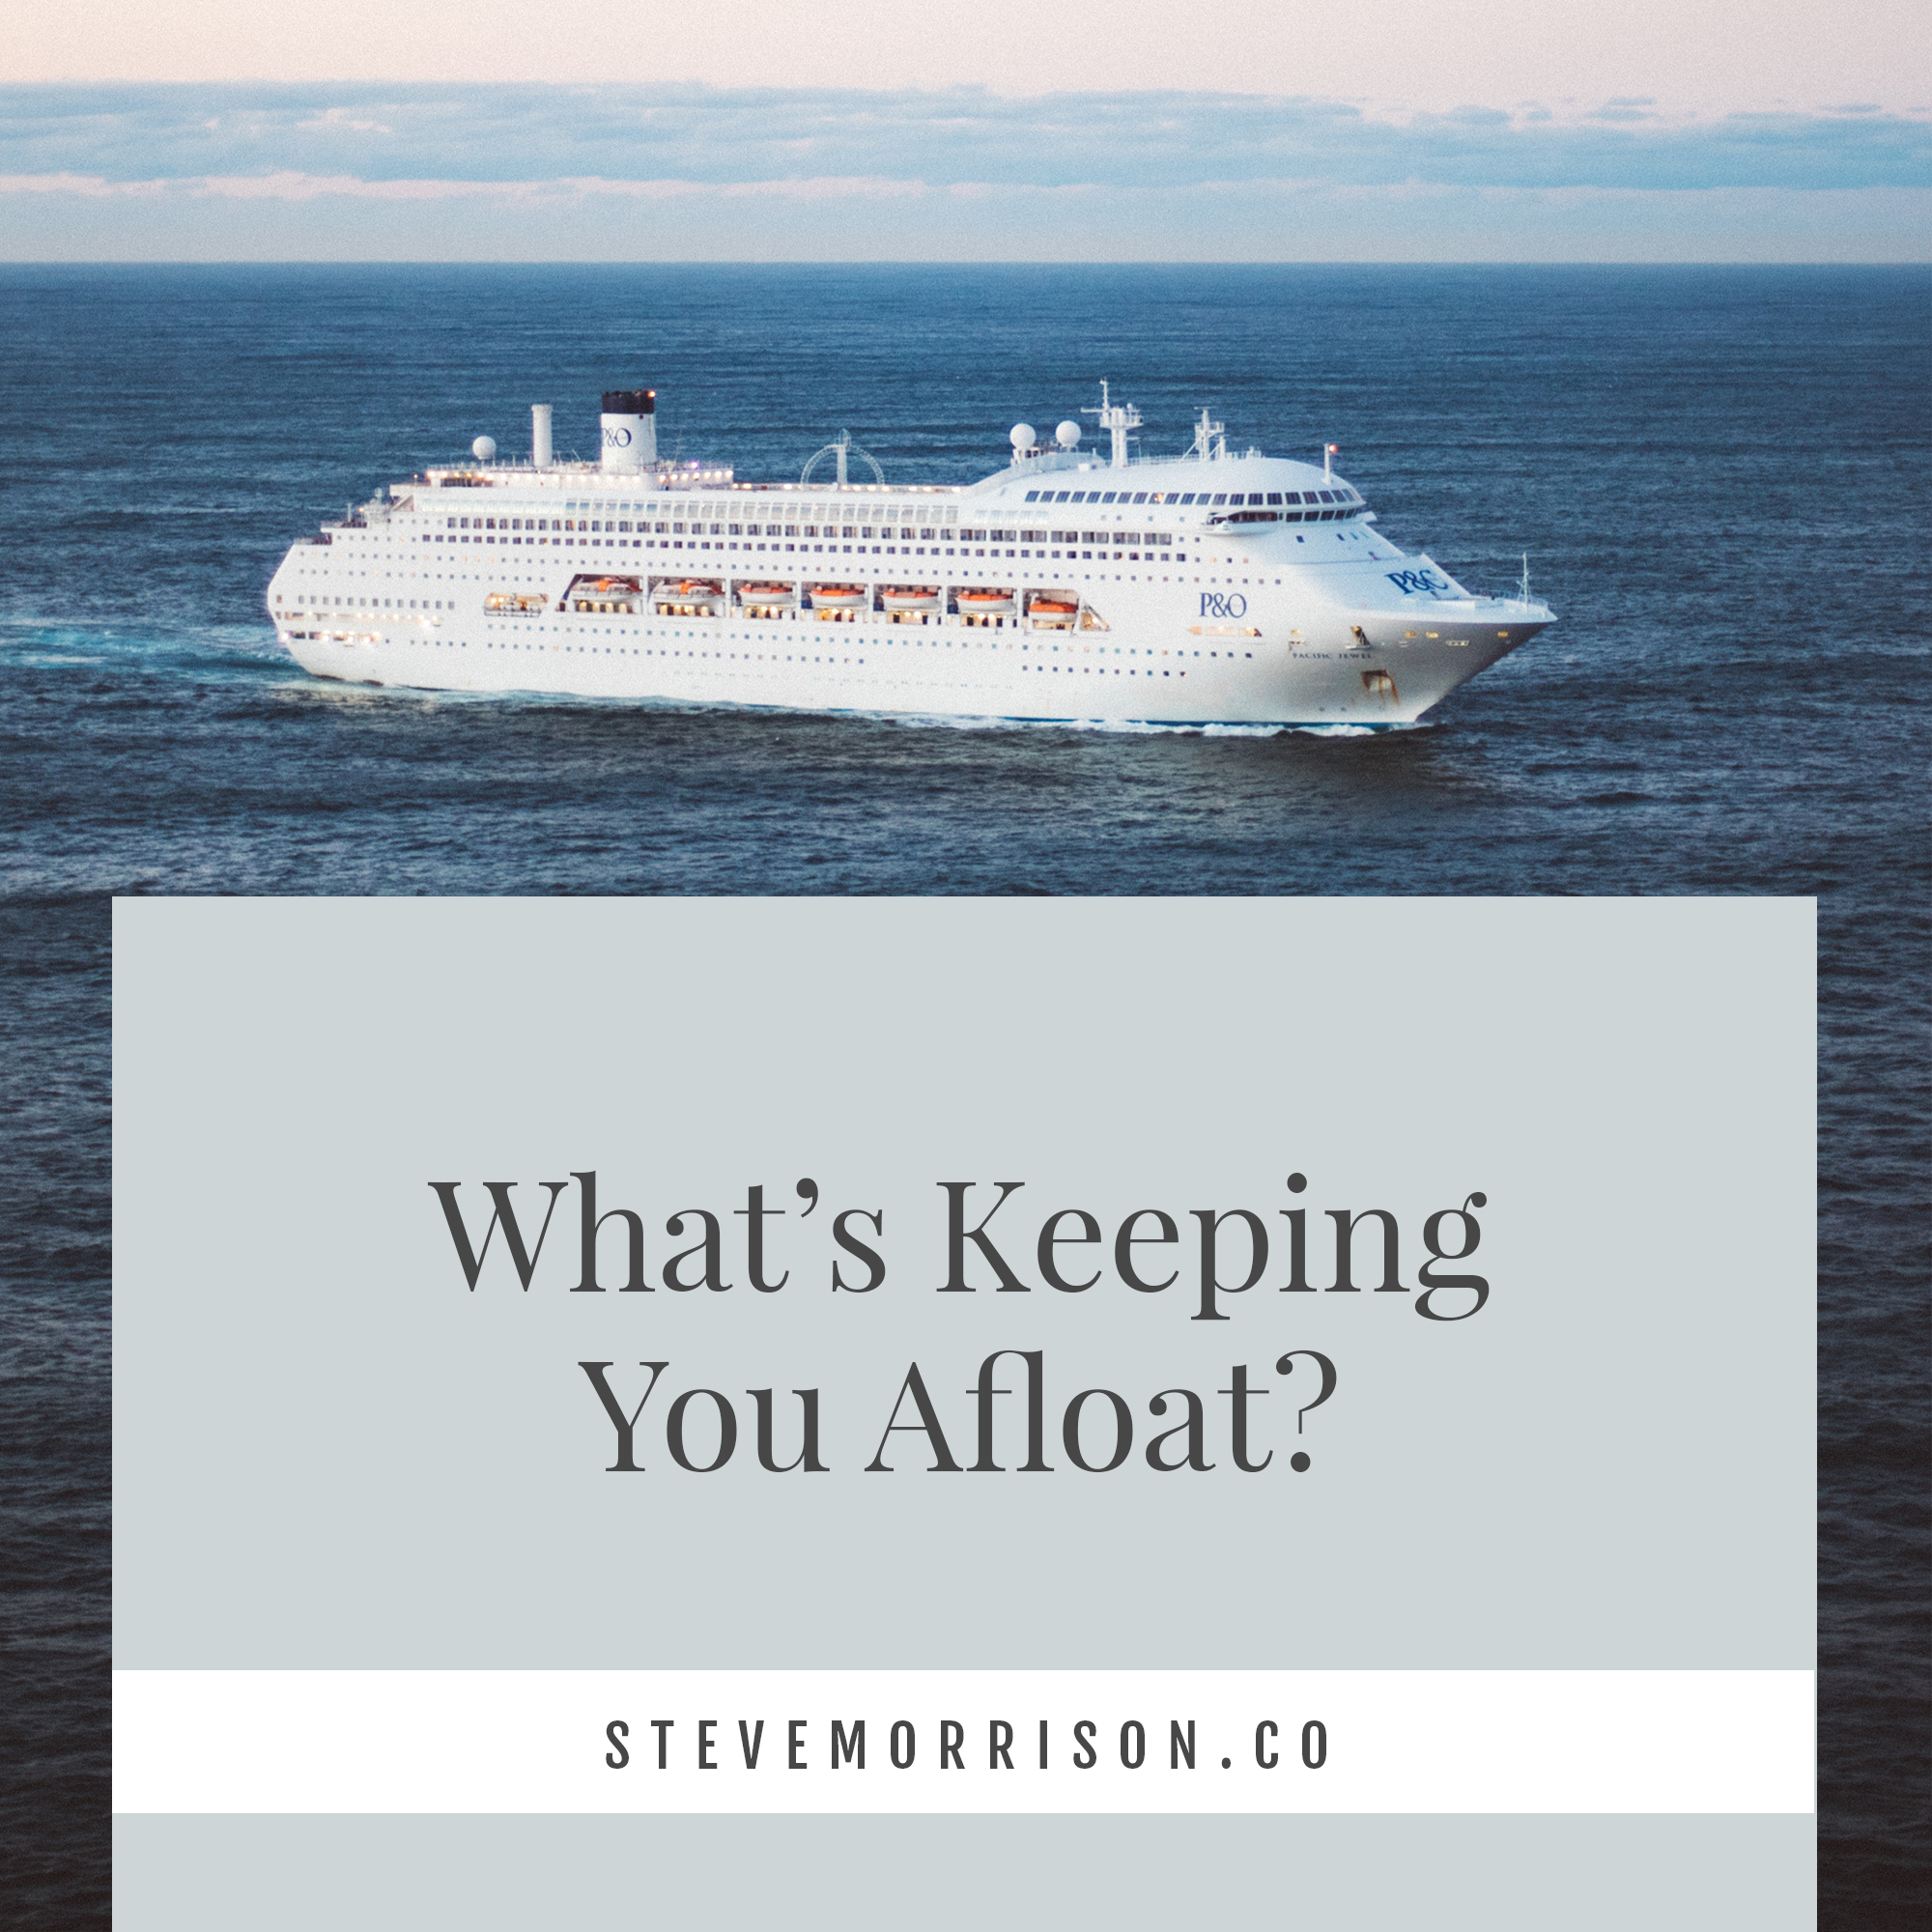 steve-morrison-grief-blog-whats-keeping-you-afloat.jpg